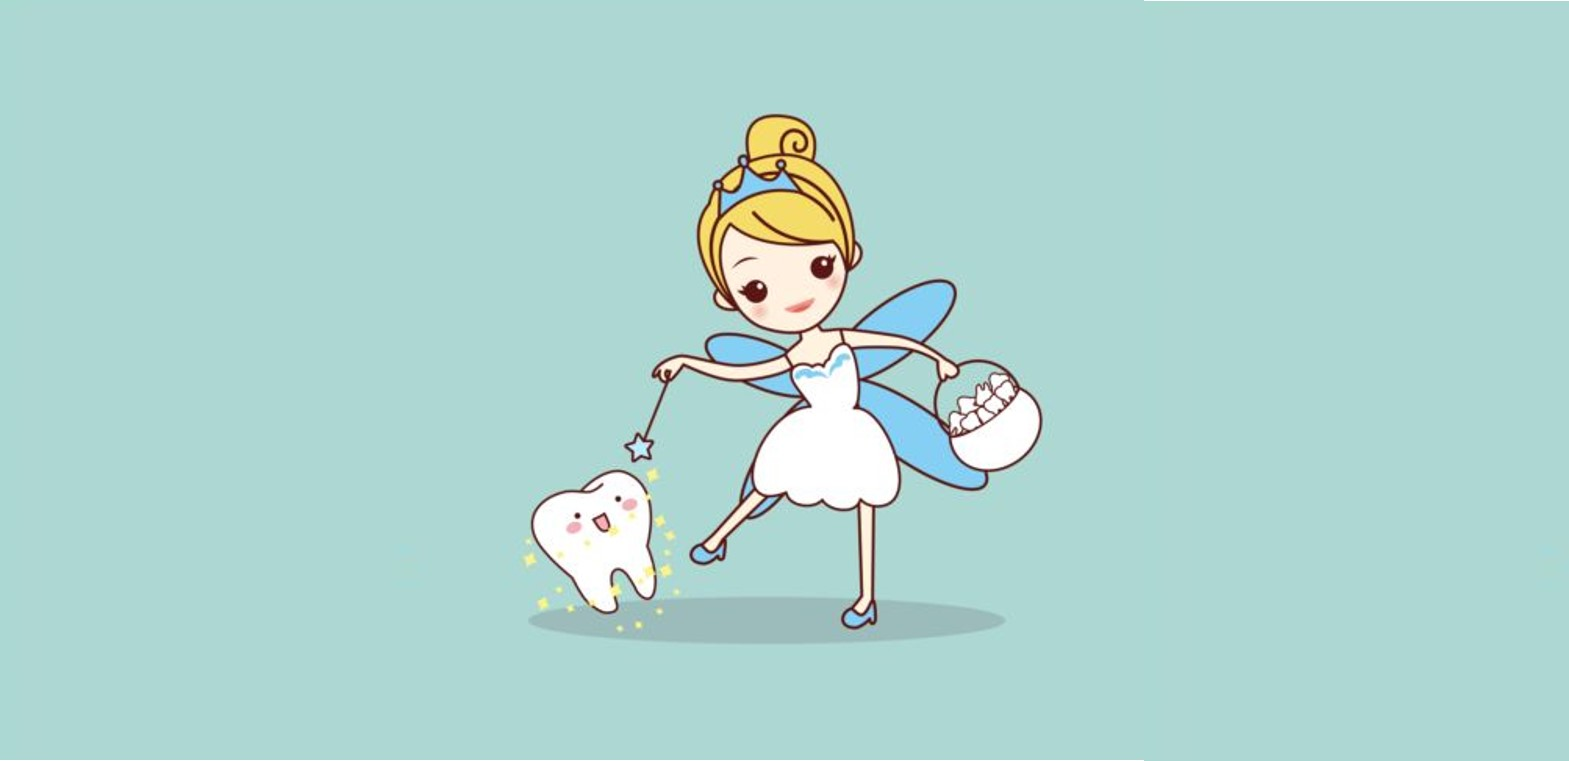 Celebrating National Tooth Fairy Day, here are 20 surprisingly relatable tweets about the struggles of being on Tooth Fairy duty call! (Photo: Release)